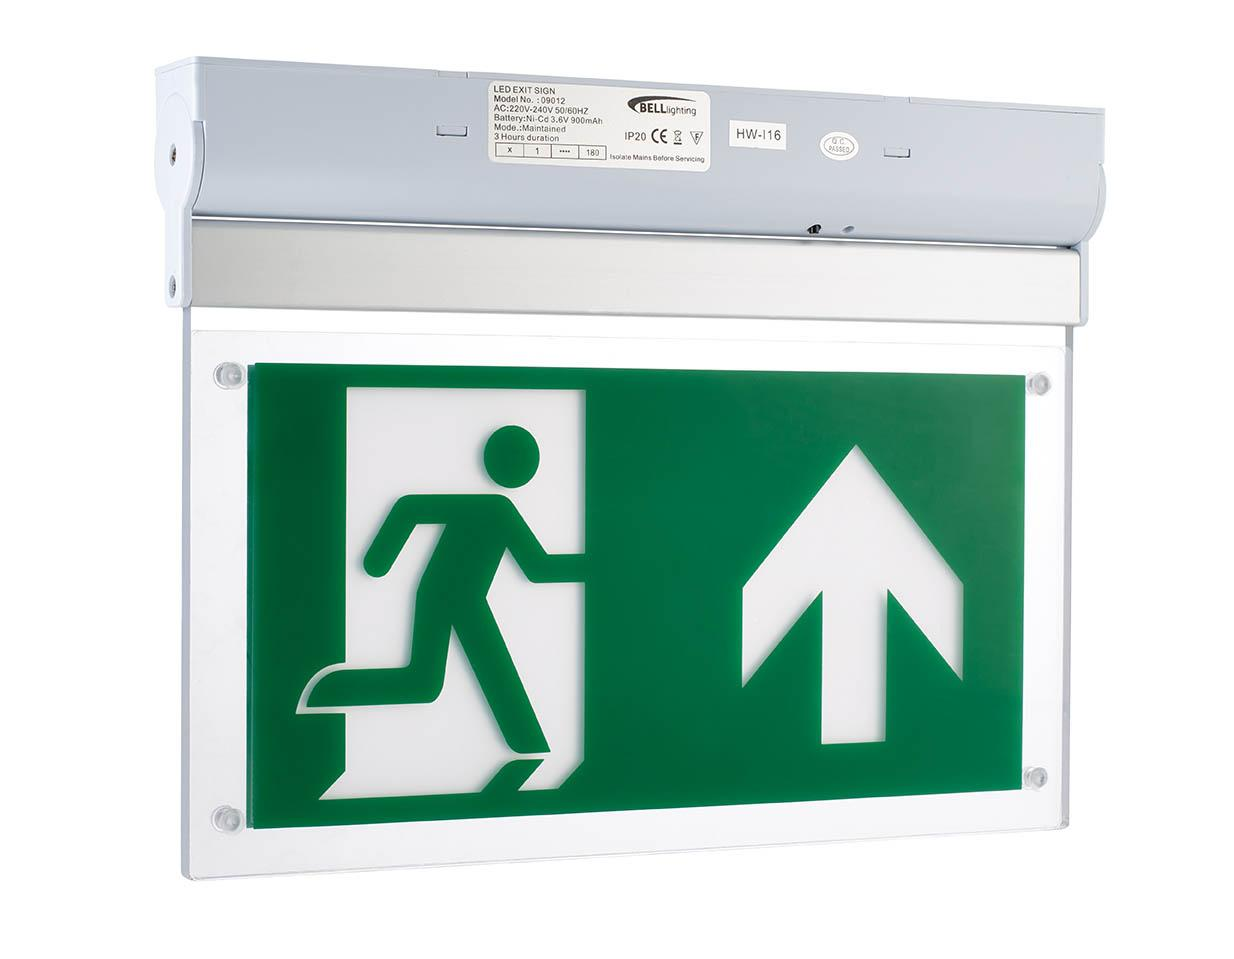 LED EMERGENCY EXIT BLADE 2.5W SM M/NM SURFACE MOUNT MAINT/NON MAINTAINED